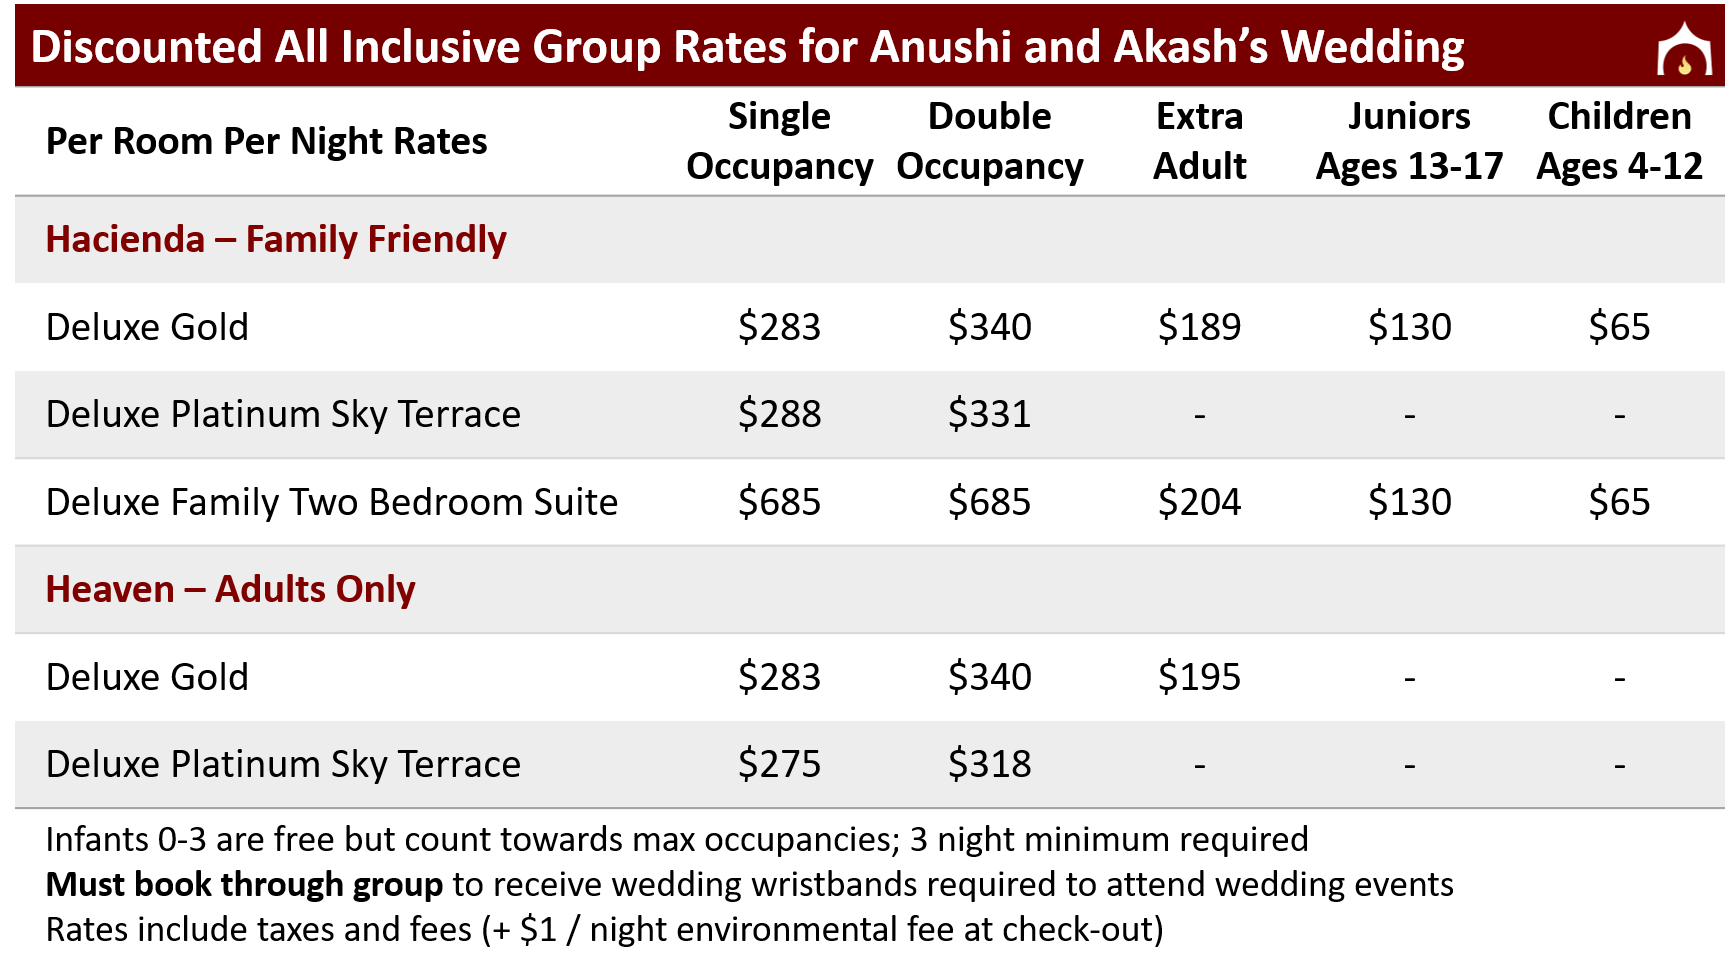 Discounted Rates for Anushi and Akash v4.png